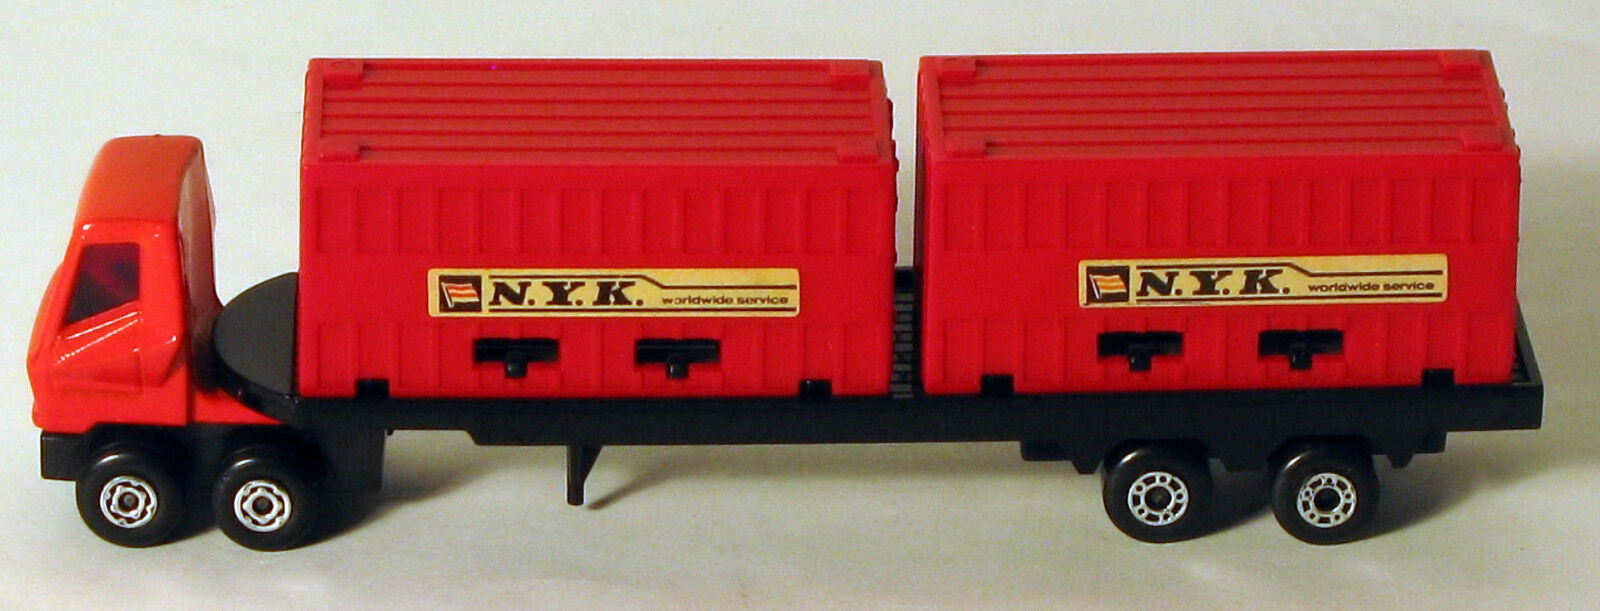 DTE LESNEY MATCHBOX CONVOY PS-1 RARE RED CAB NYK DOUBLE CONTAINER TRUCK